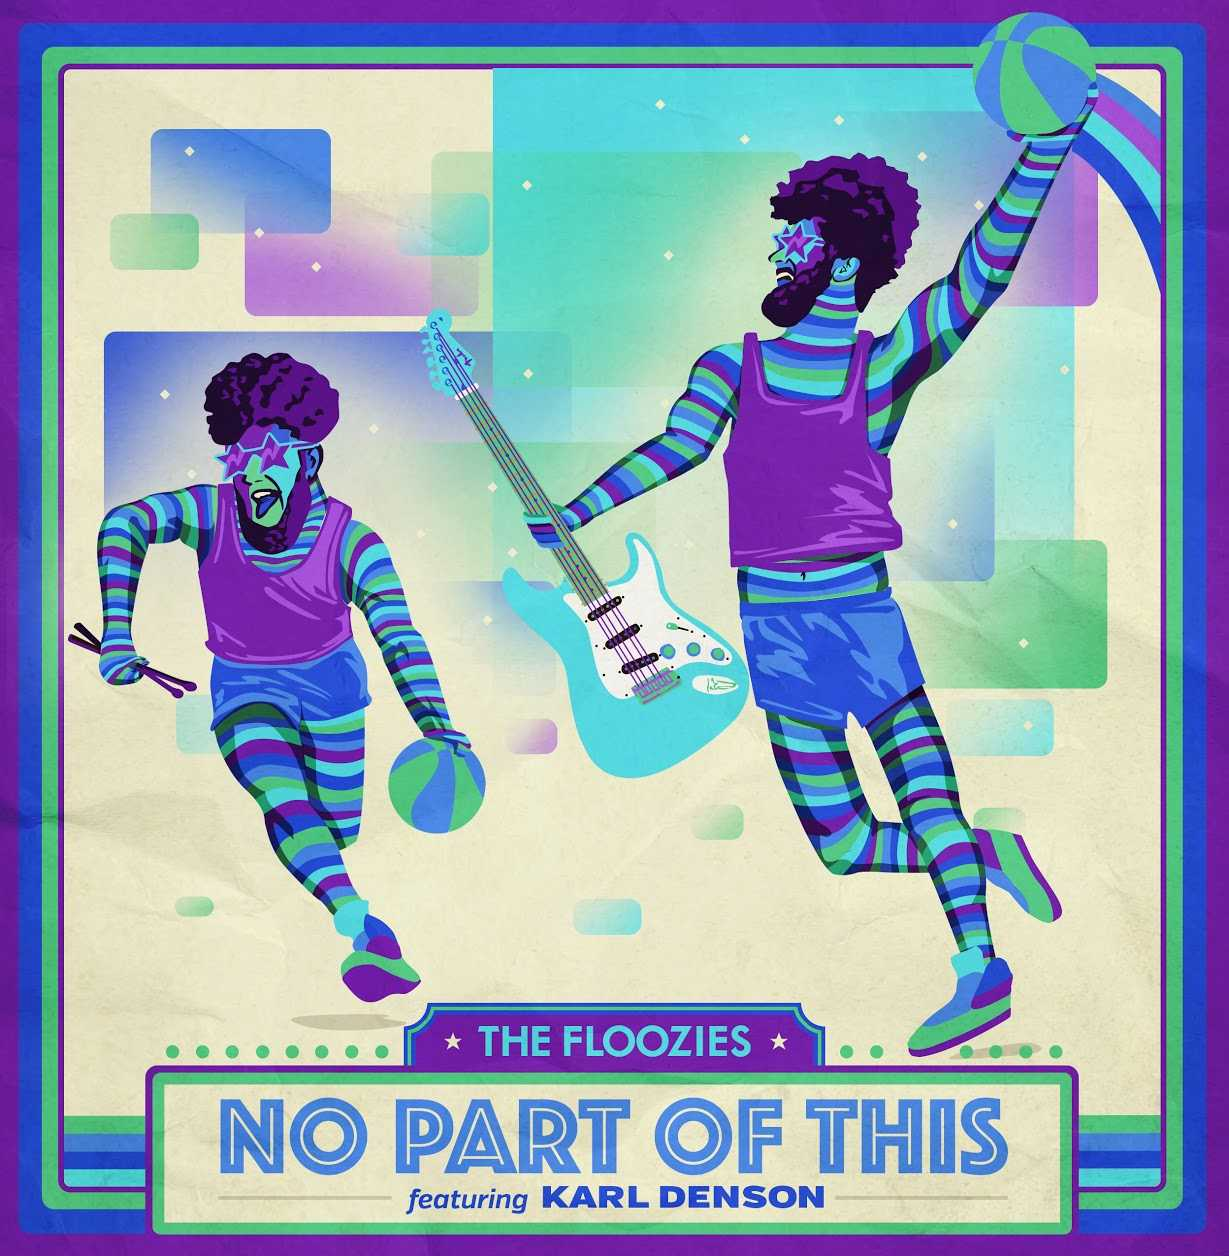 Exclusive Premiere: The Floozies And Karl Denson Bring The Funk On 'No Part Of This' | The Floozies